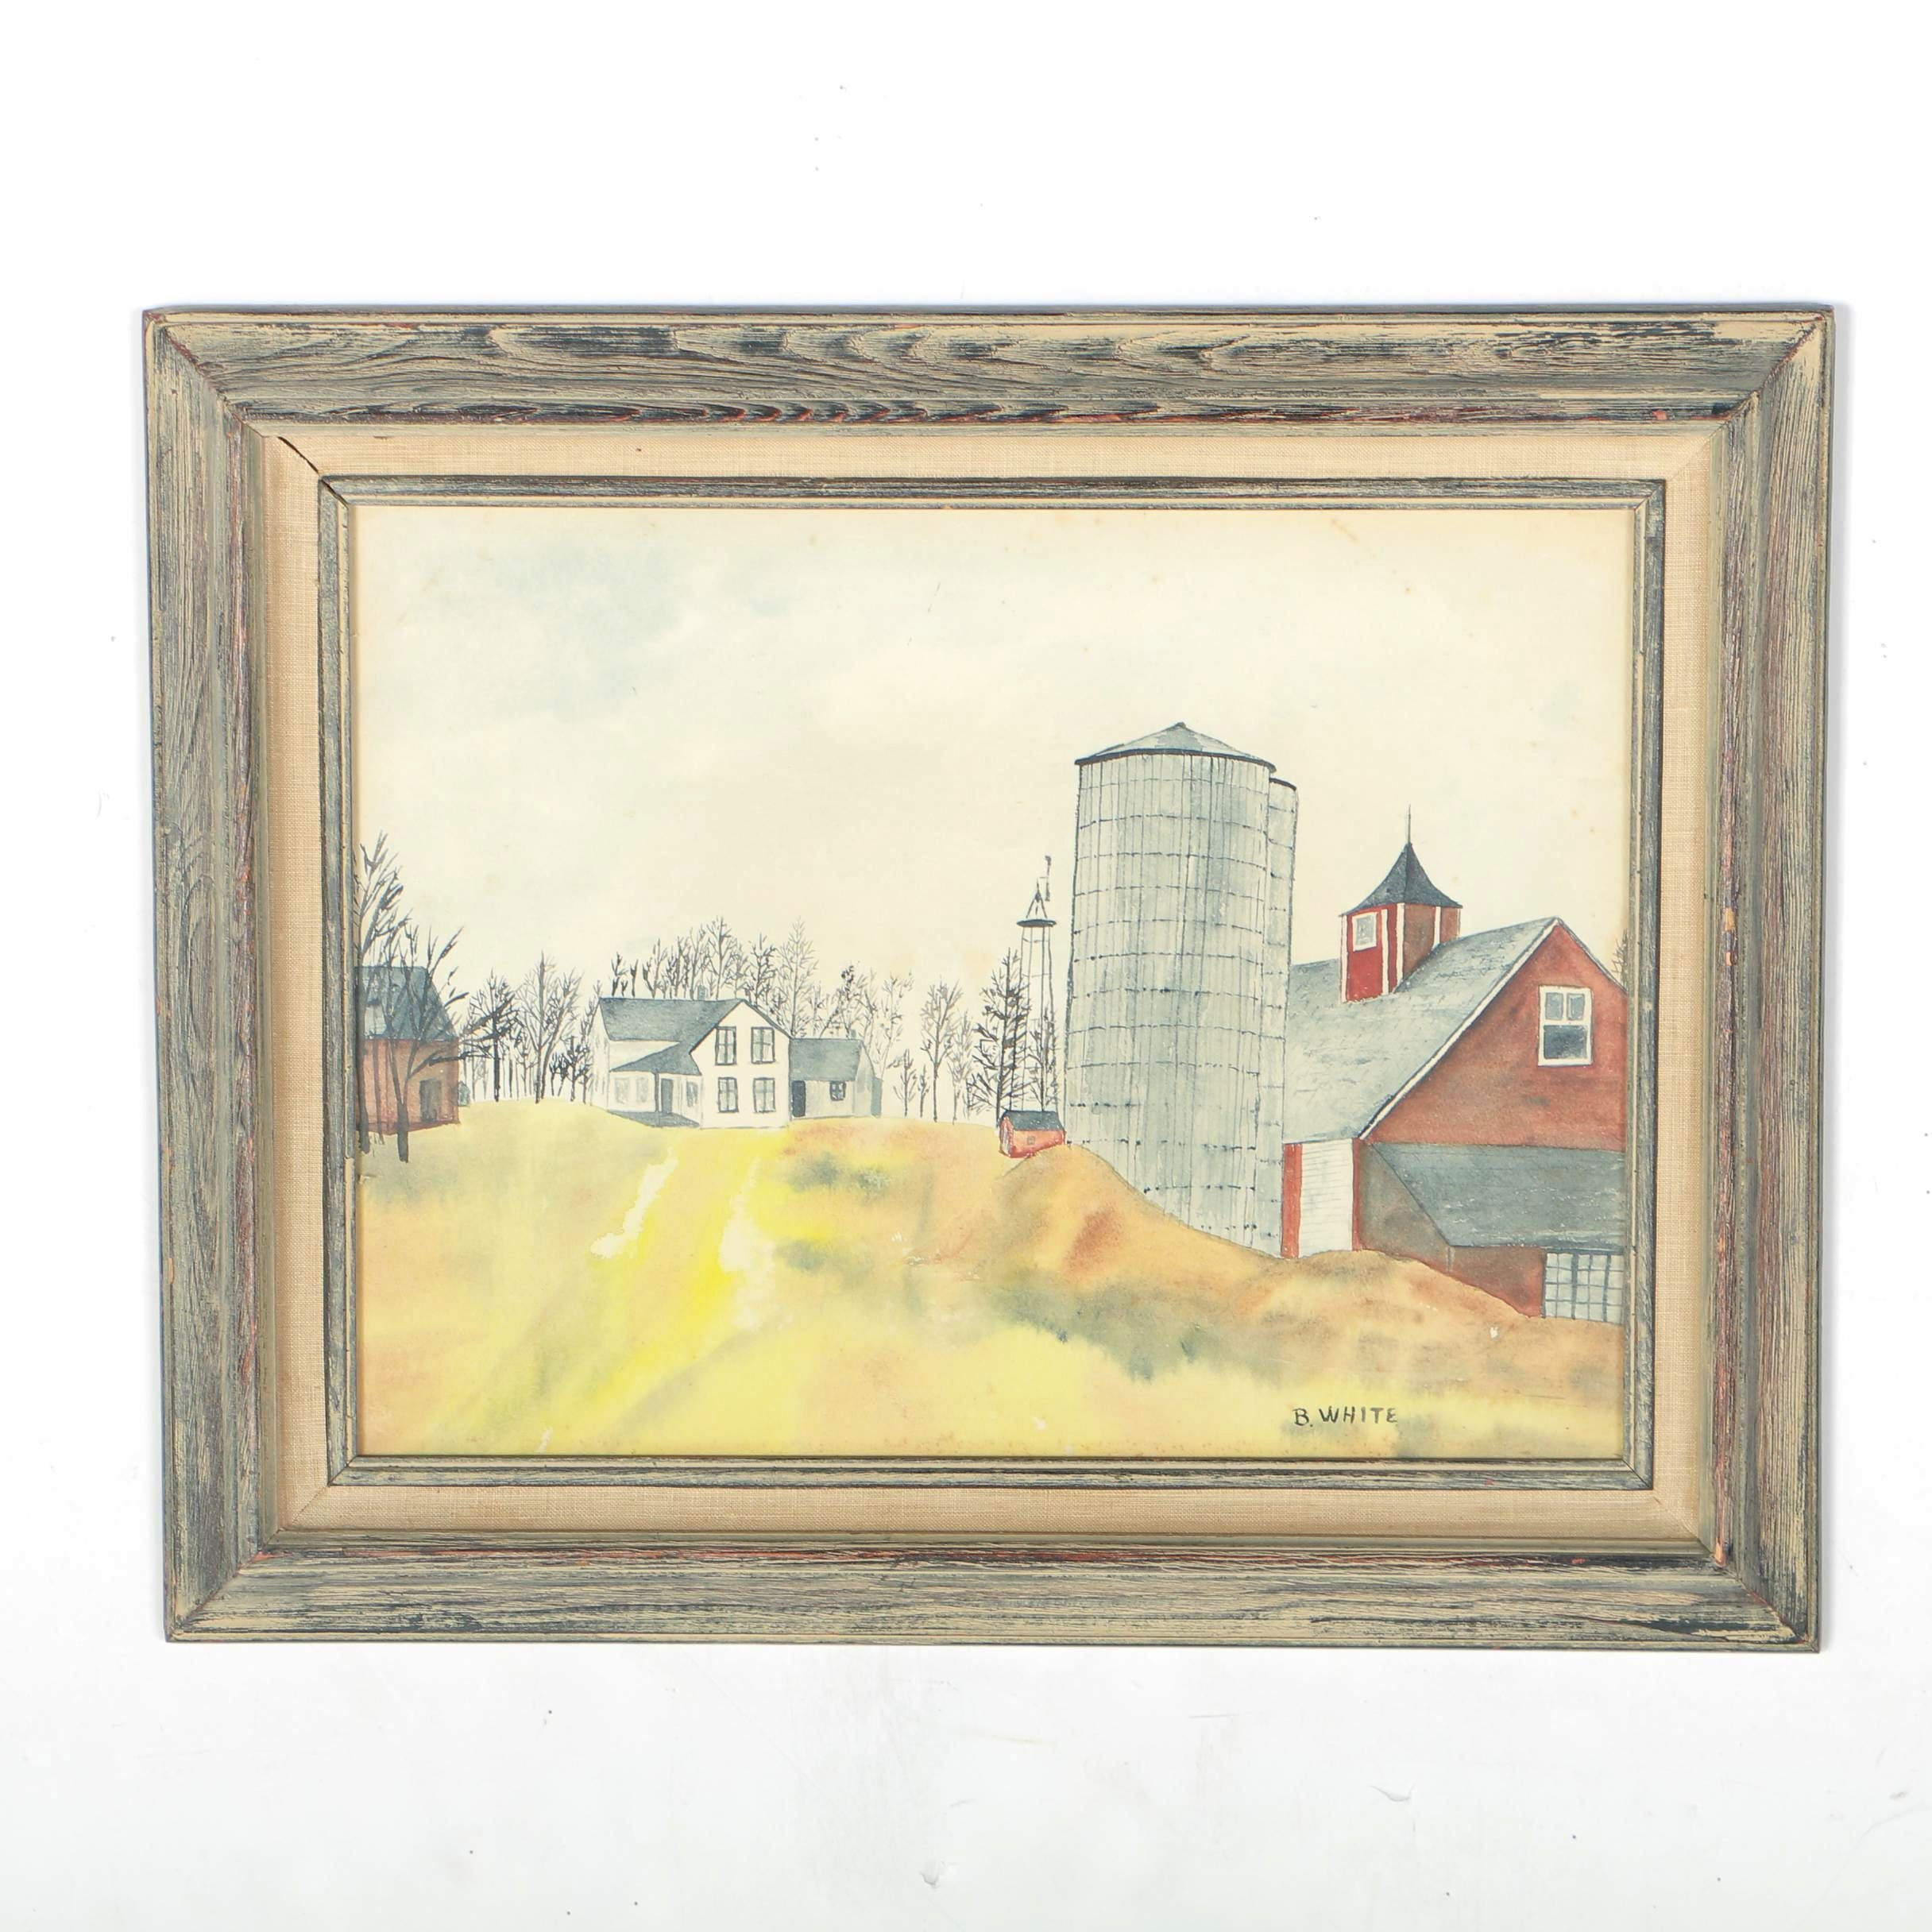 1979 Original Watercolor Painting of Farm